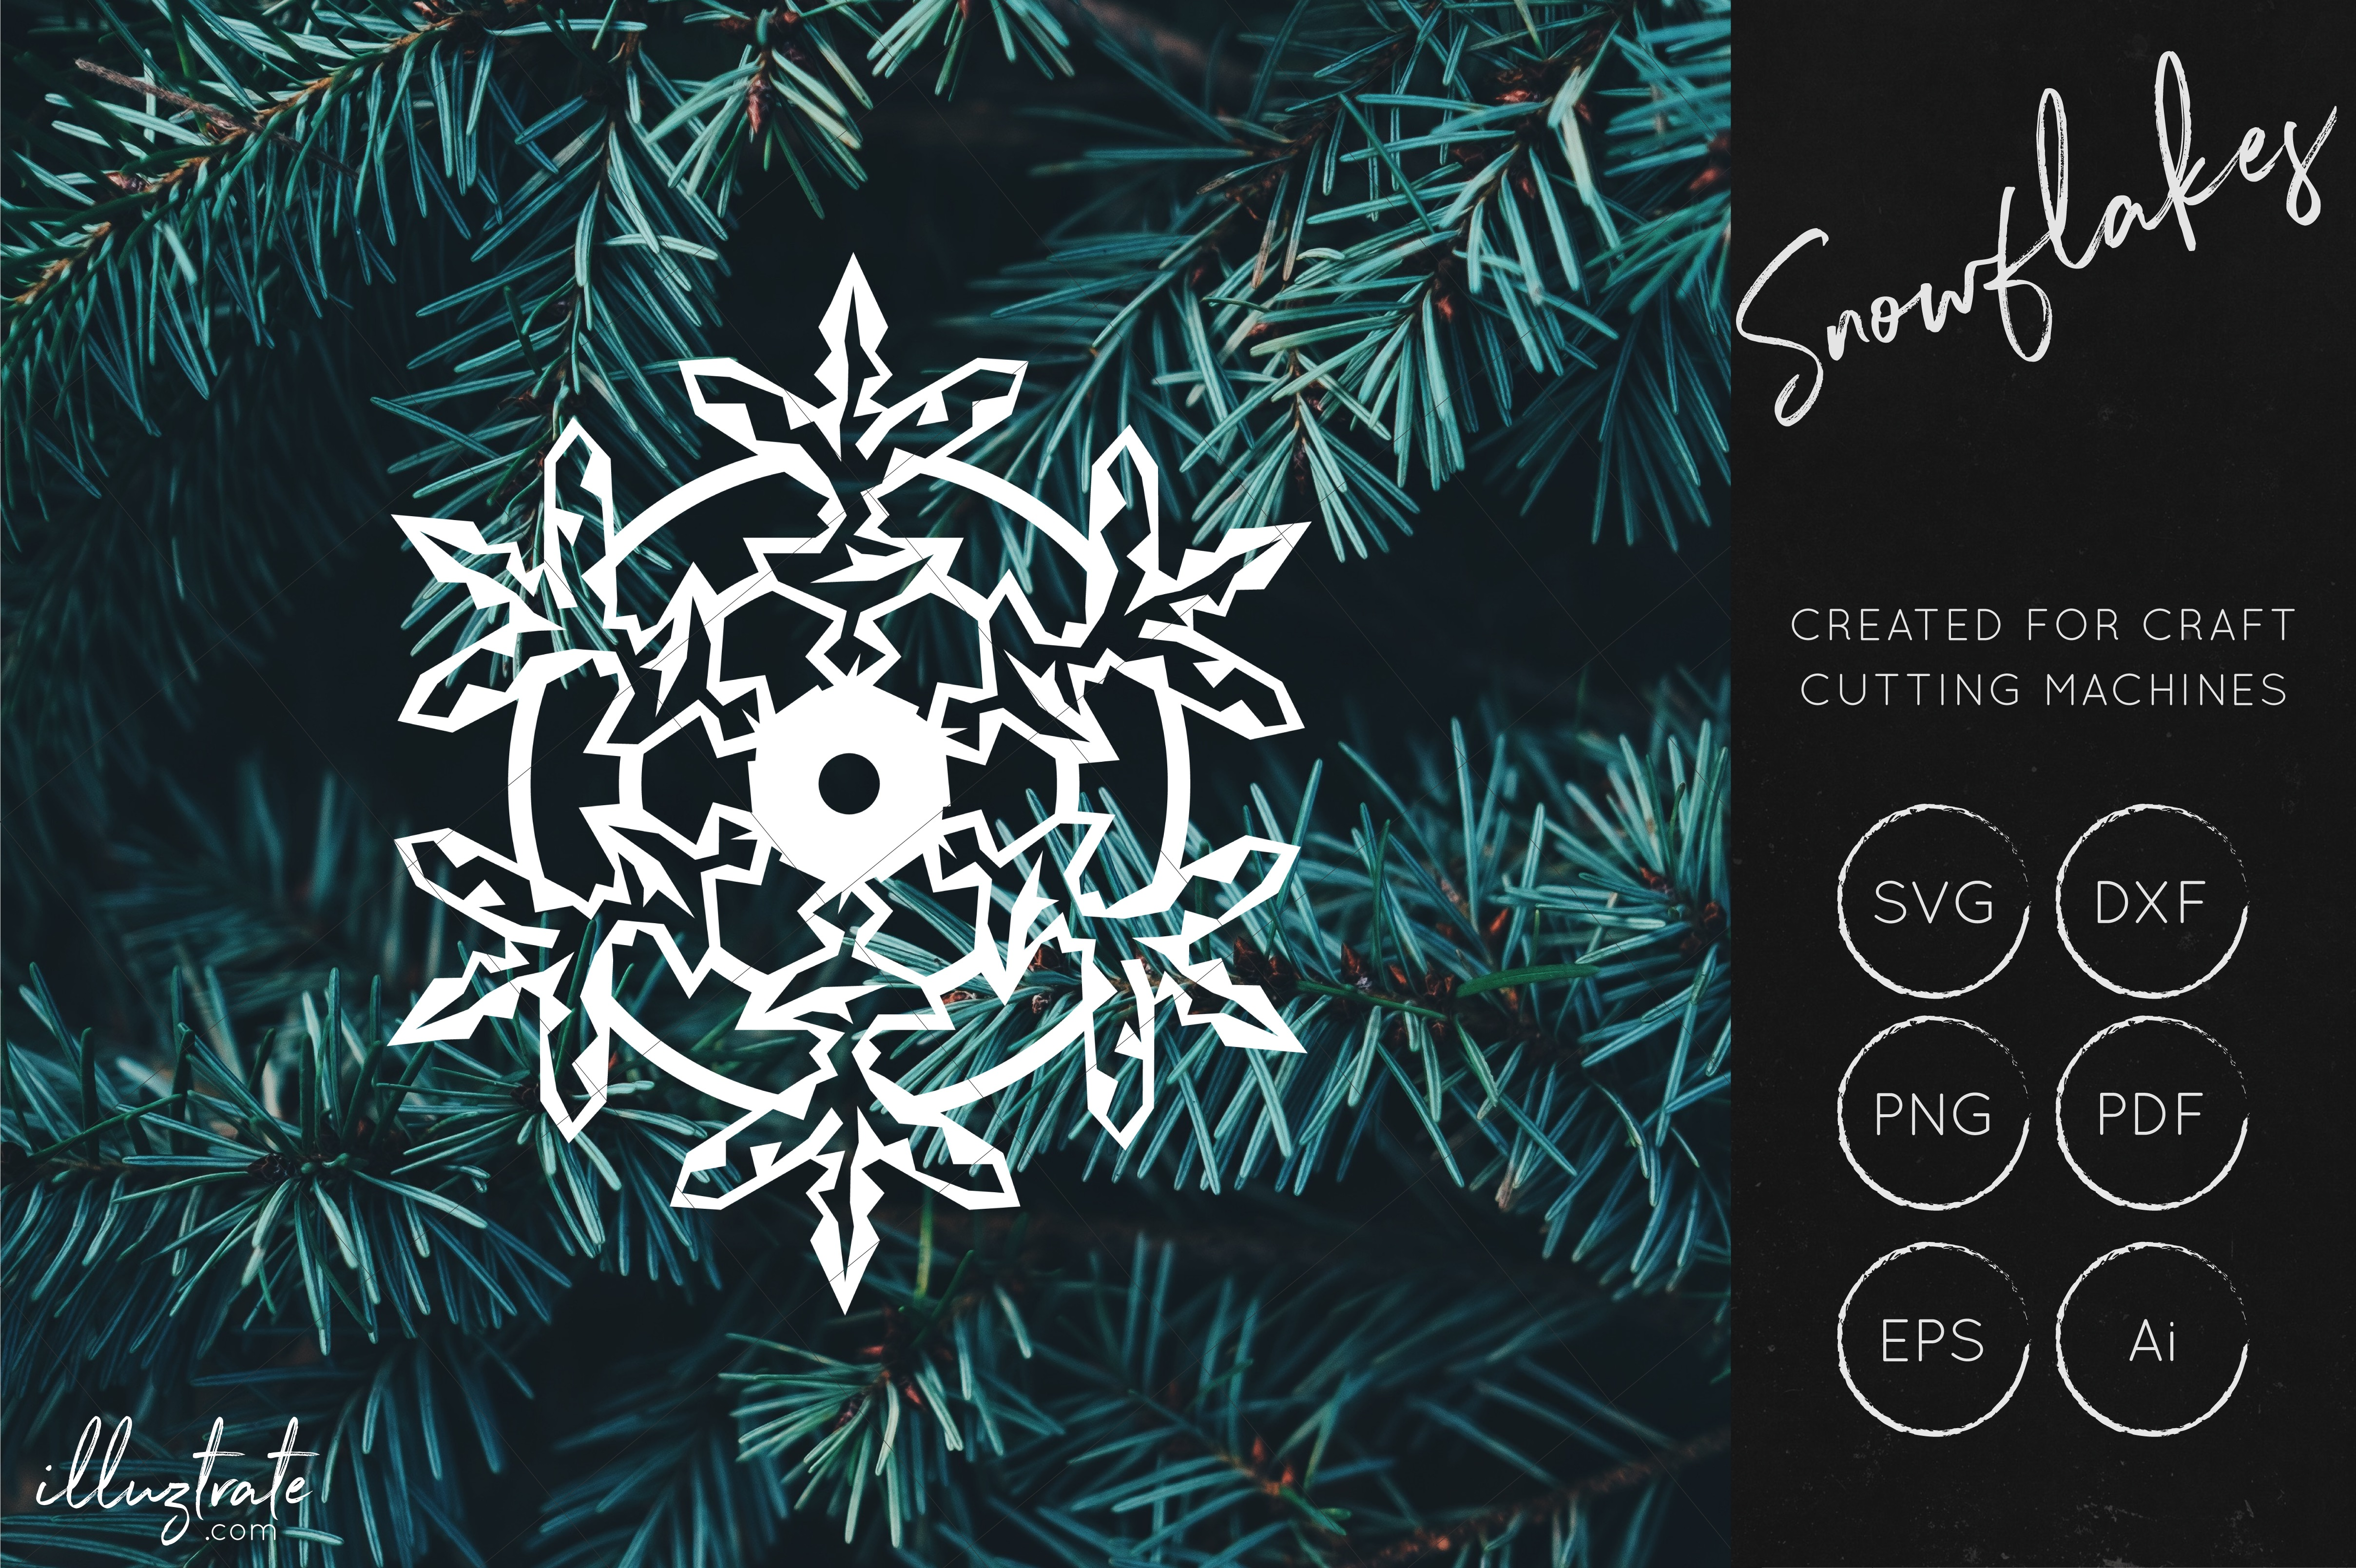 Snowflake SVG Cut File Bundles - Christmas SVG - Snowflakes example image 8